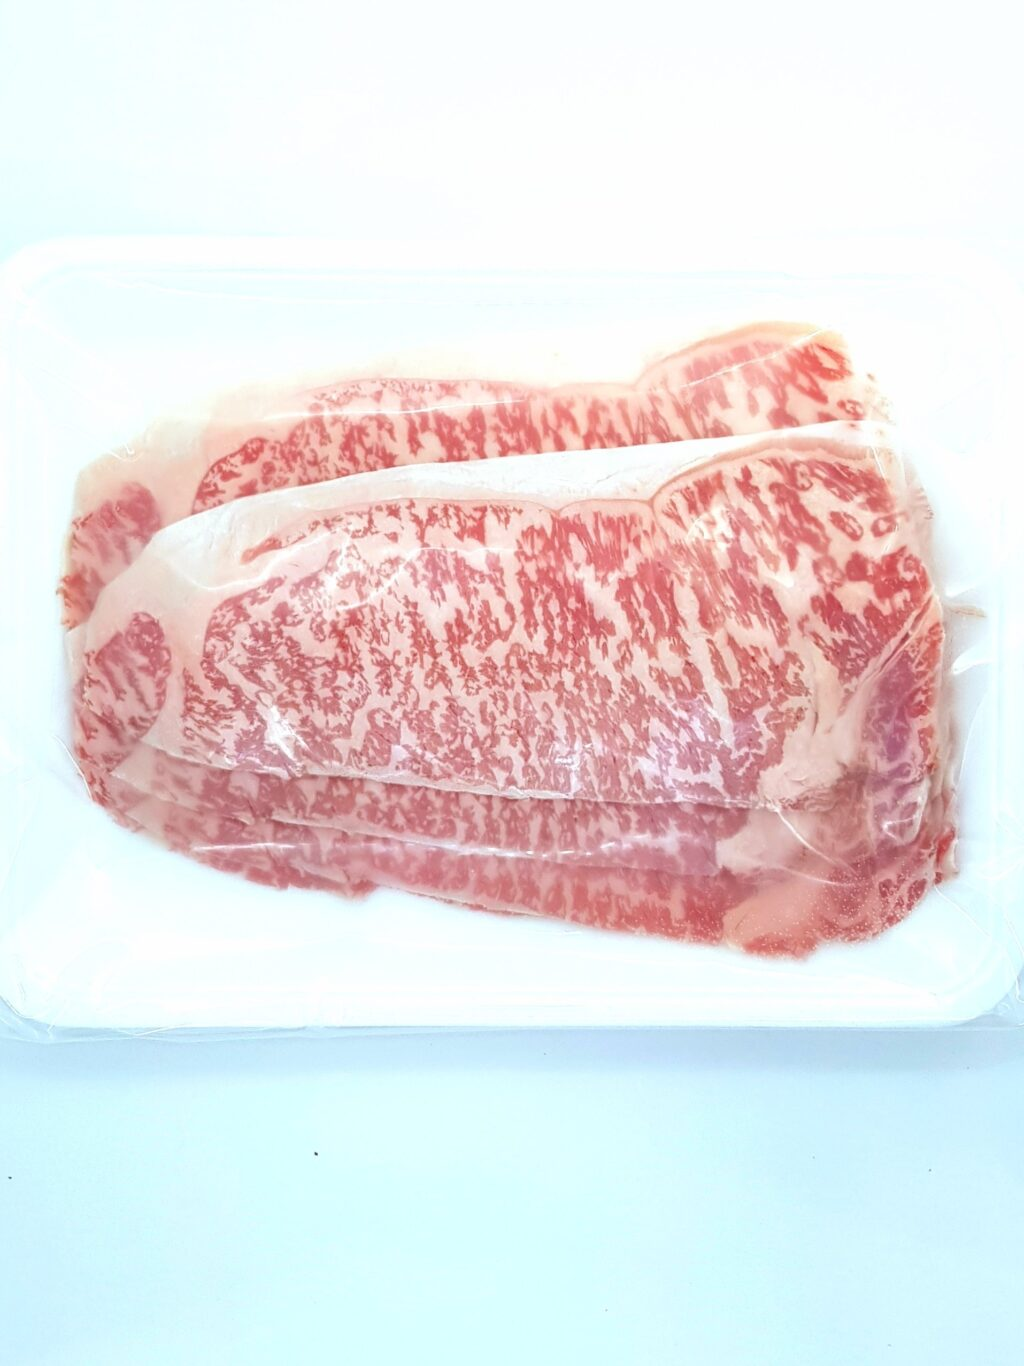 A4 Striploin is usually the most used part in Japanese Wagyu cuisine and the meat has a cap of fat which runs through the top part of the steak. This gives an extra fatty melt in your mouth feel with A5 grade meat in the center portion, providing the full Japanese beef flavor.